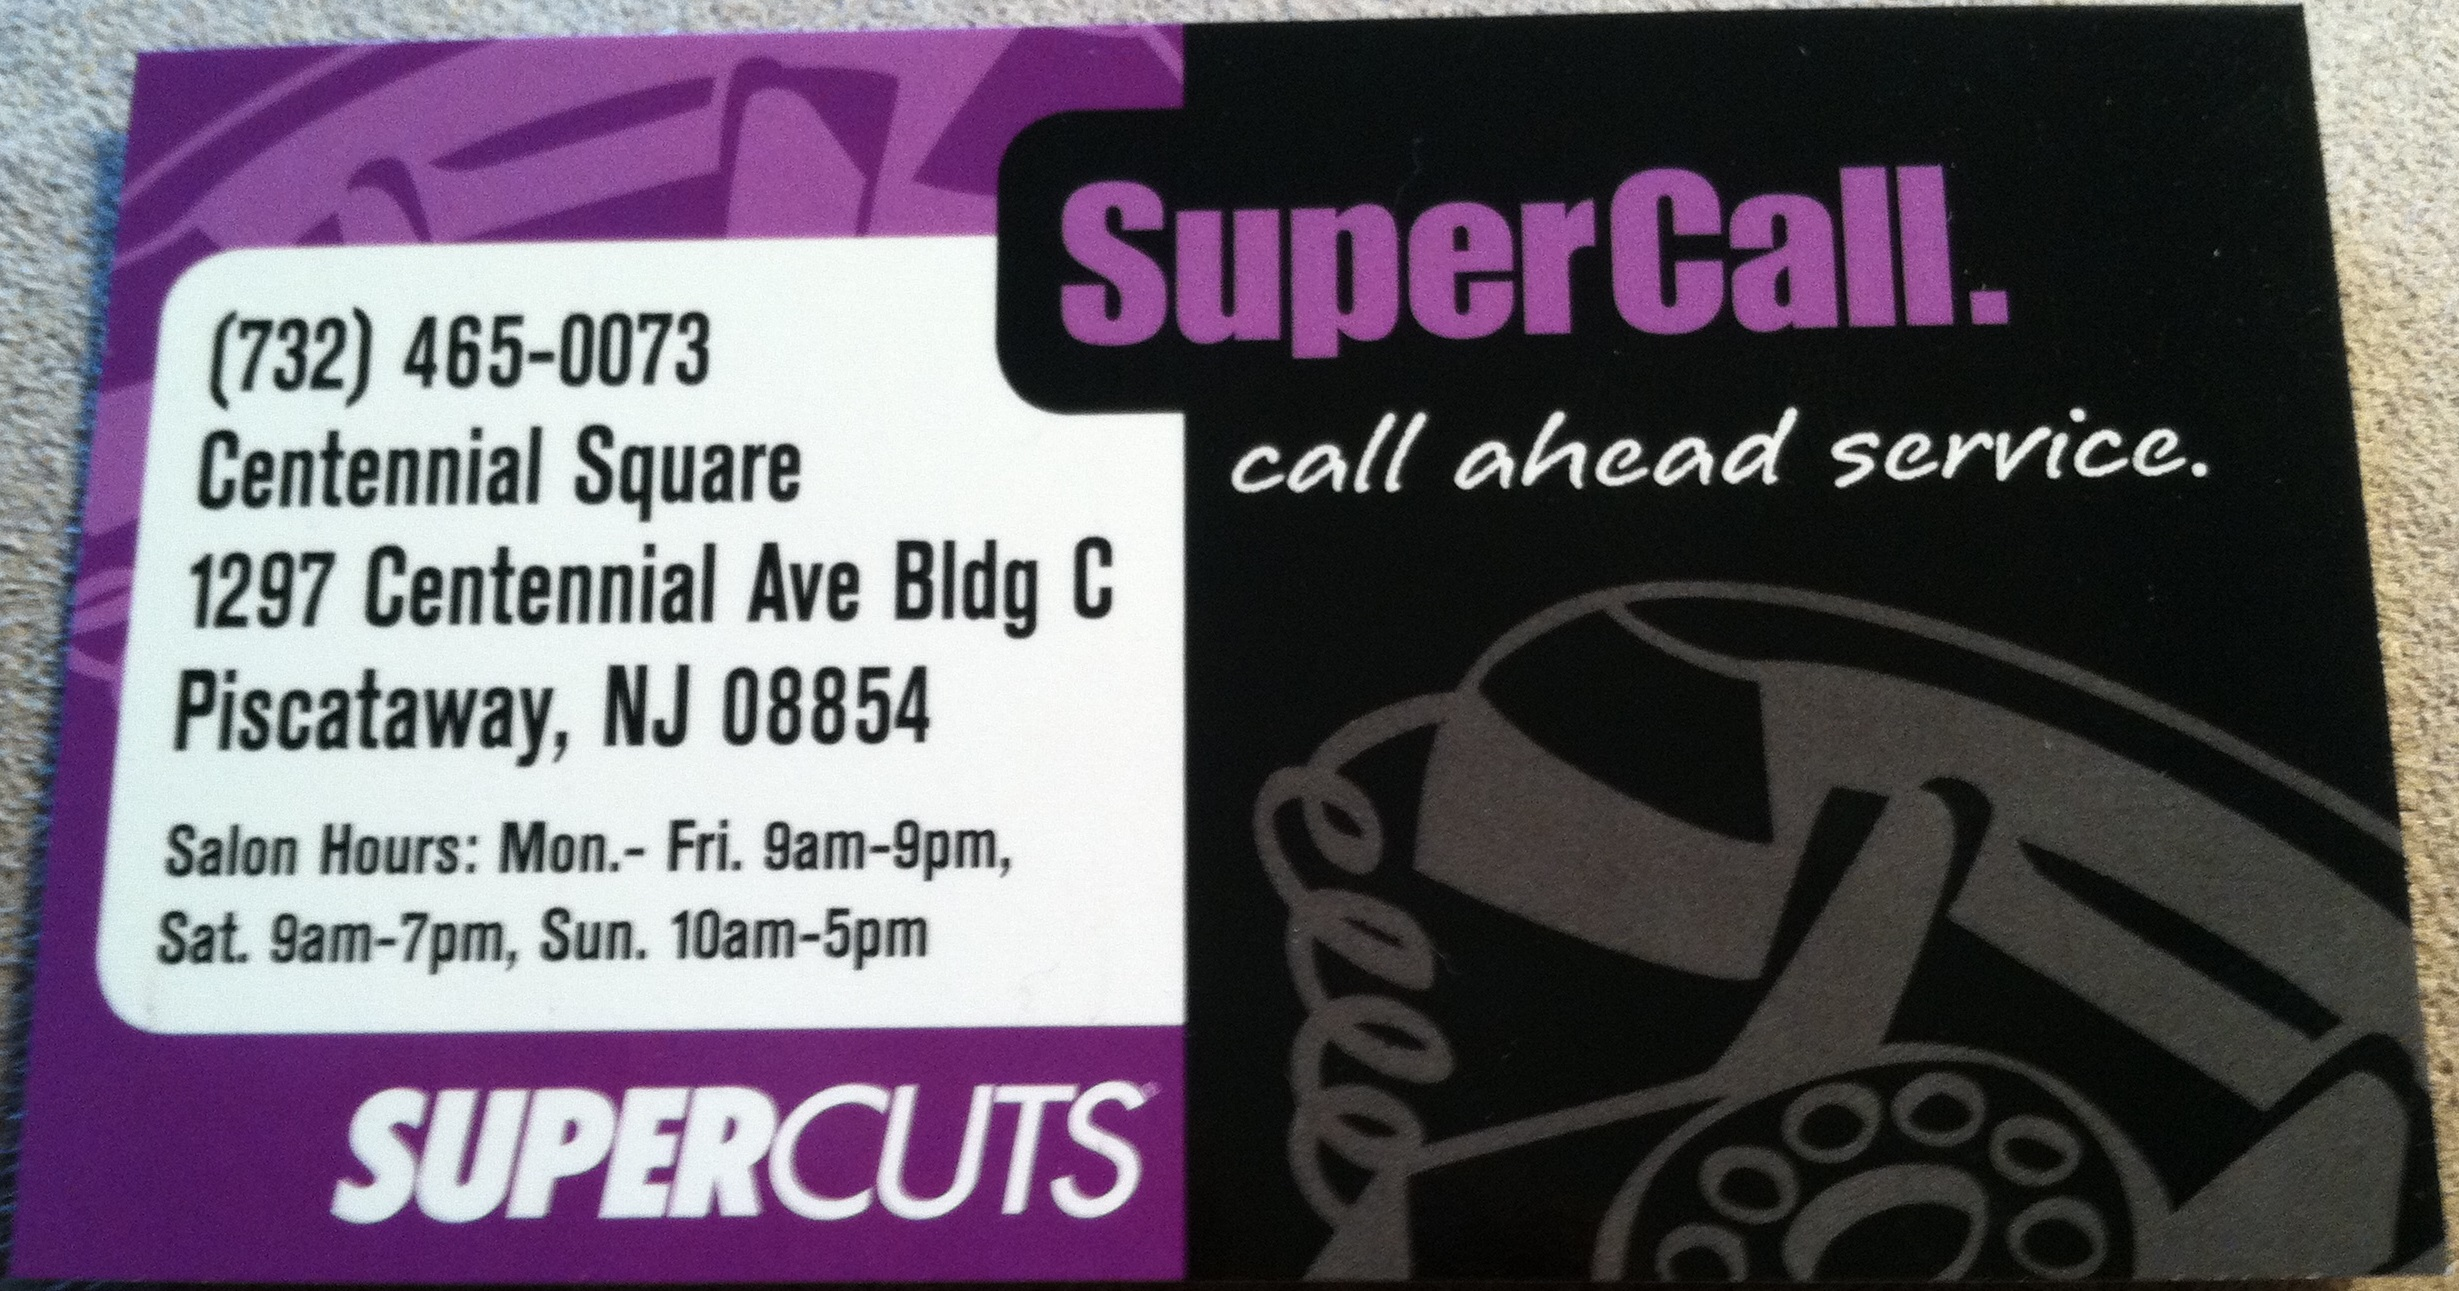 Business card from supercuts piscataway nj business card collector supercuts nj winobraniefo Choice Image